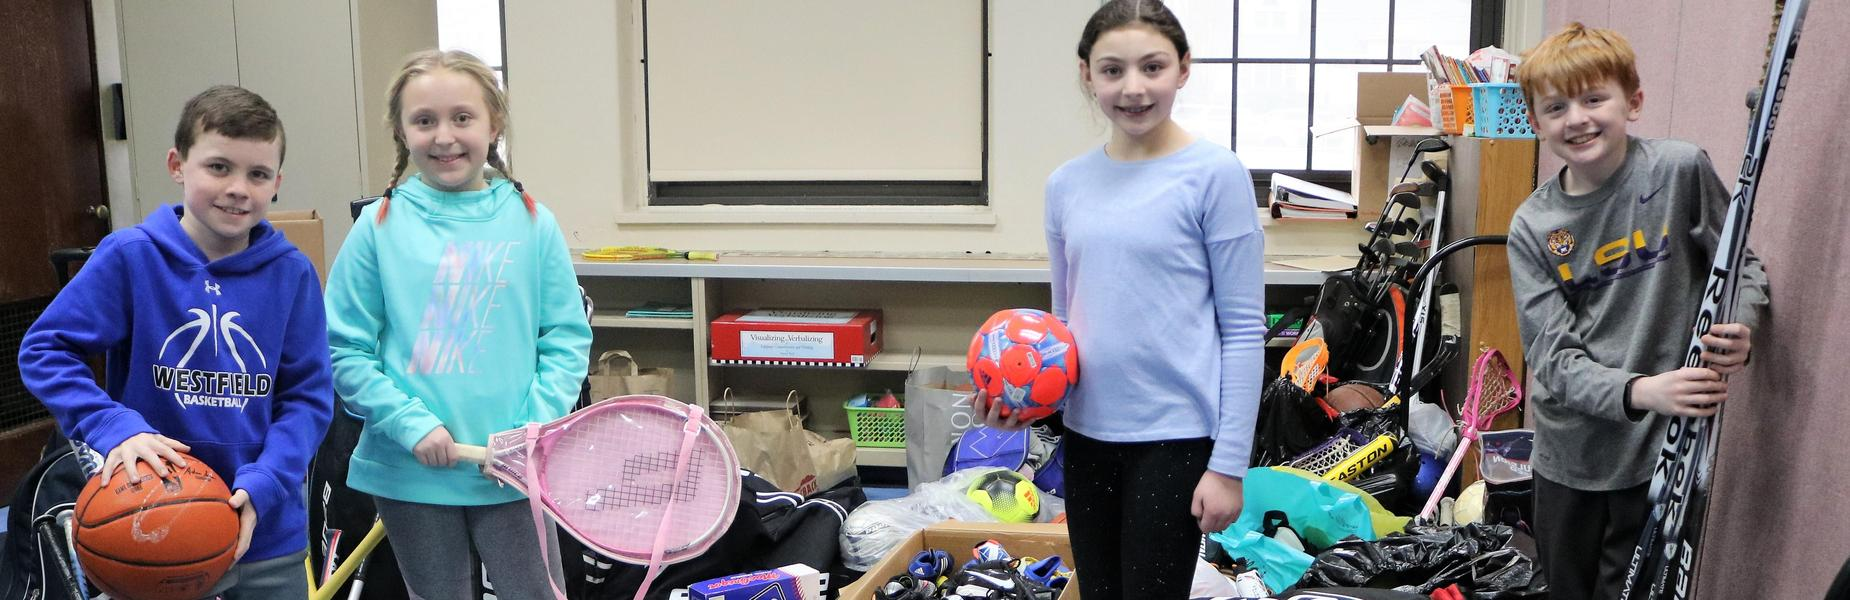 Wilson 4th graders display gently used sporting equipment collected during the school's